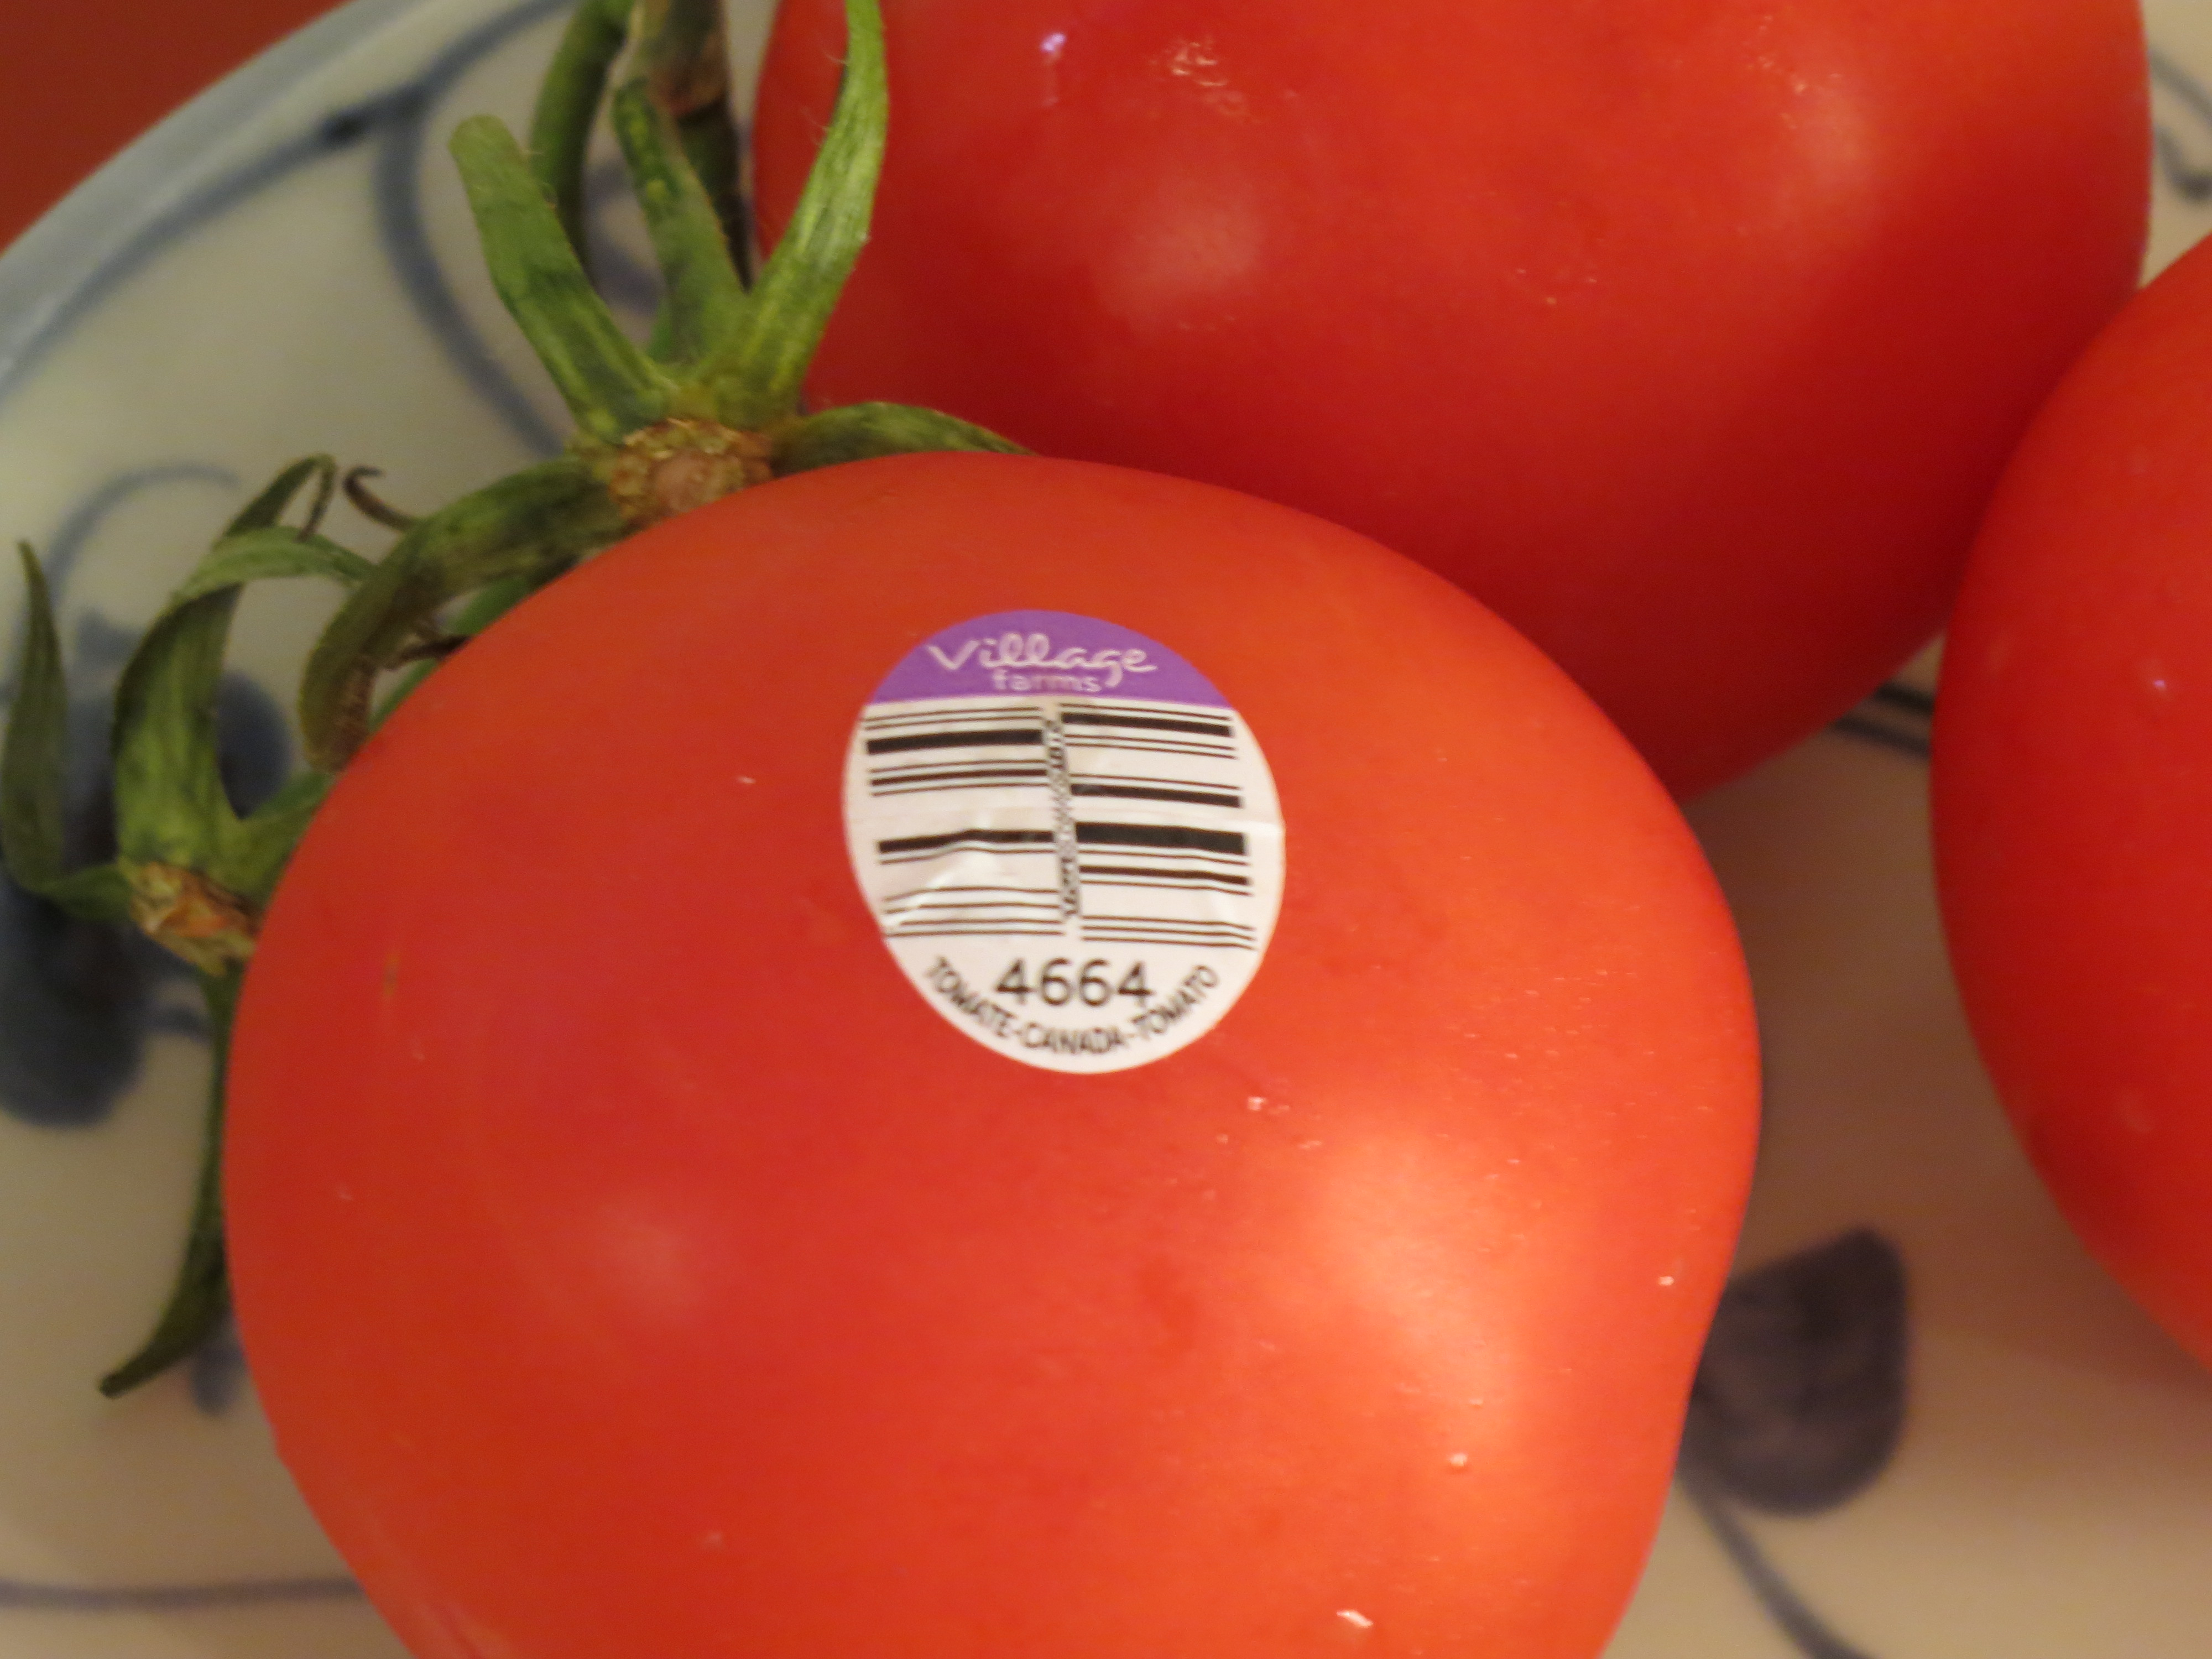 Five-digit PLU codes tell us the produce is not traditionally grown. For example, a five-digit PLU code starting with the number